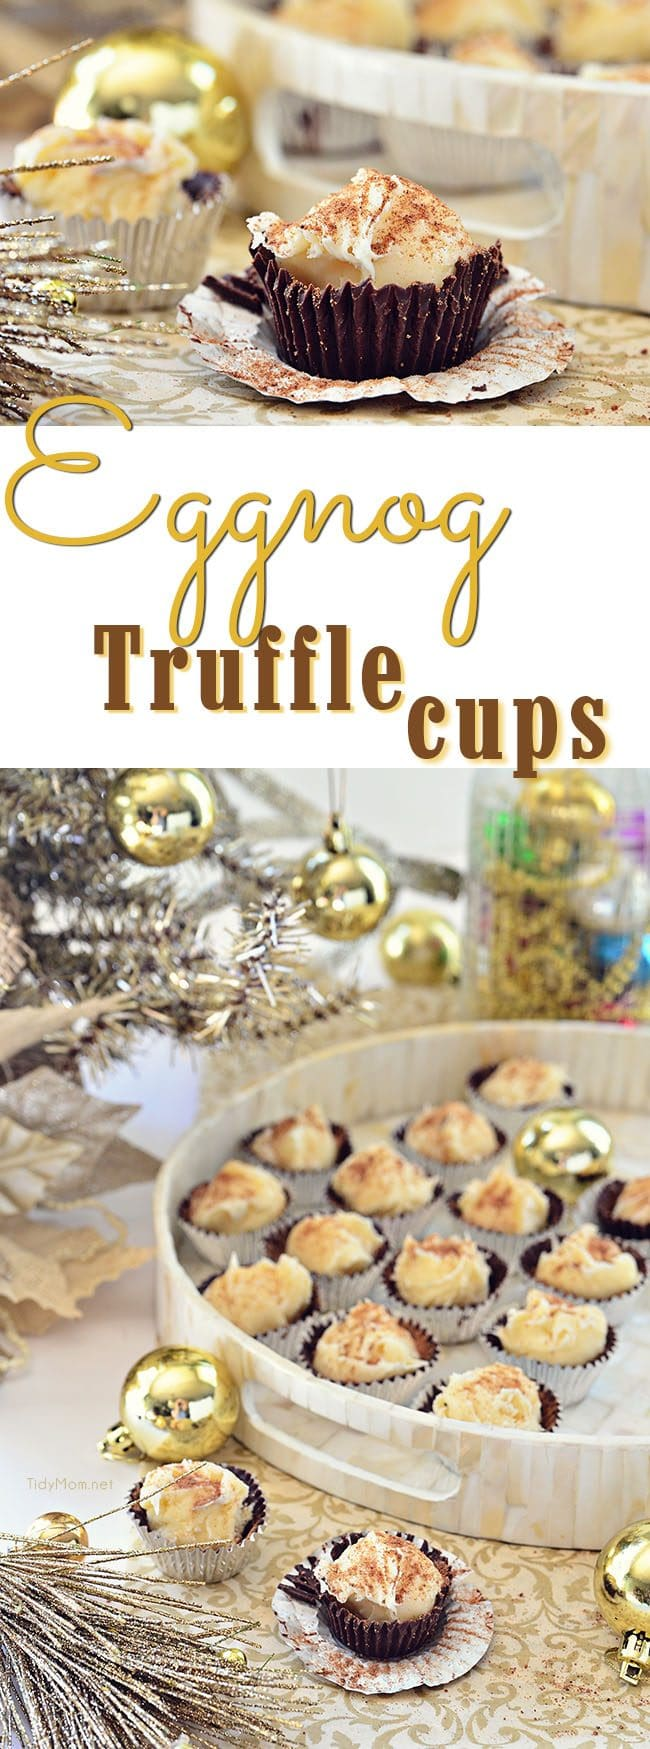 Eggnog Truffles in Chocolate Cups photo collage